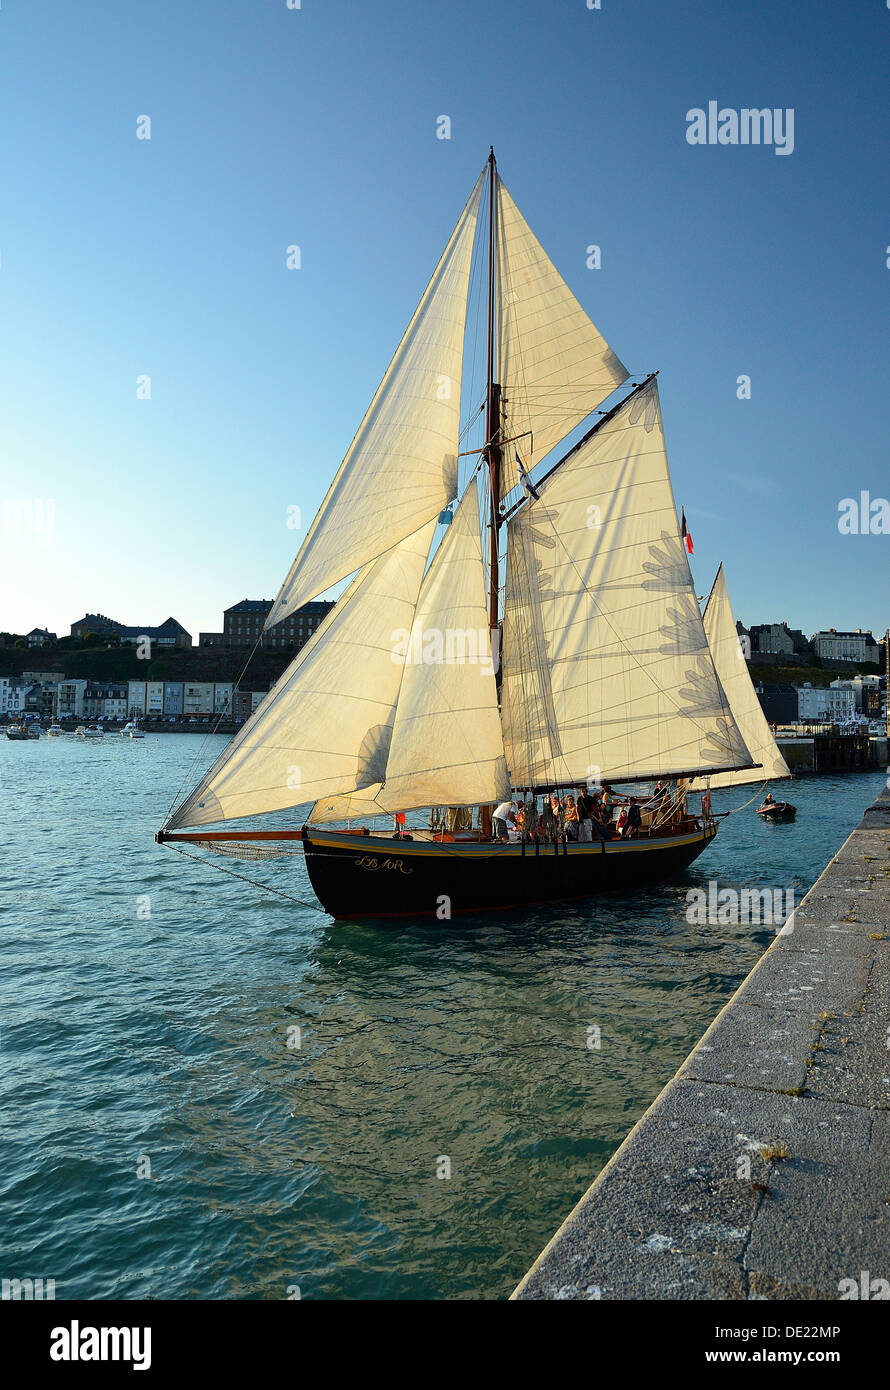 Lys noir (French classic yacht  Rig: yawl auric, 1914) leaving the